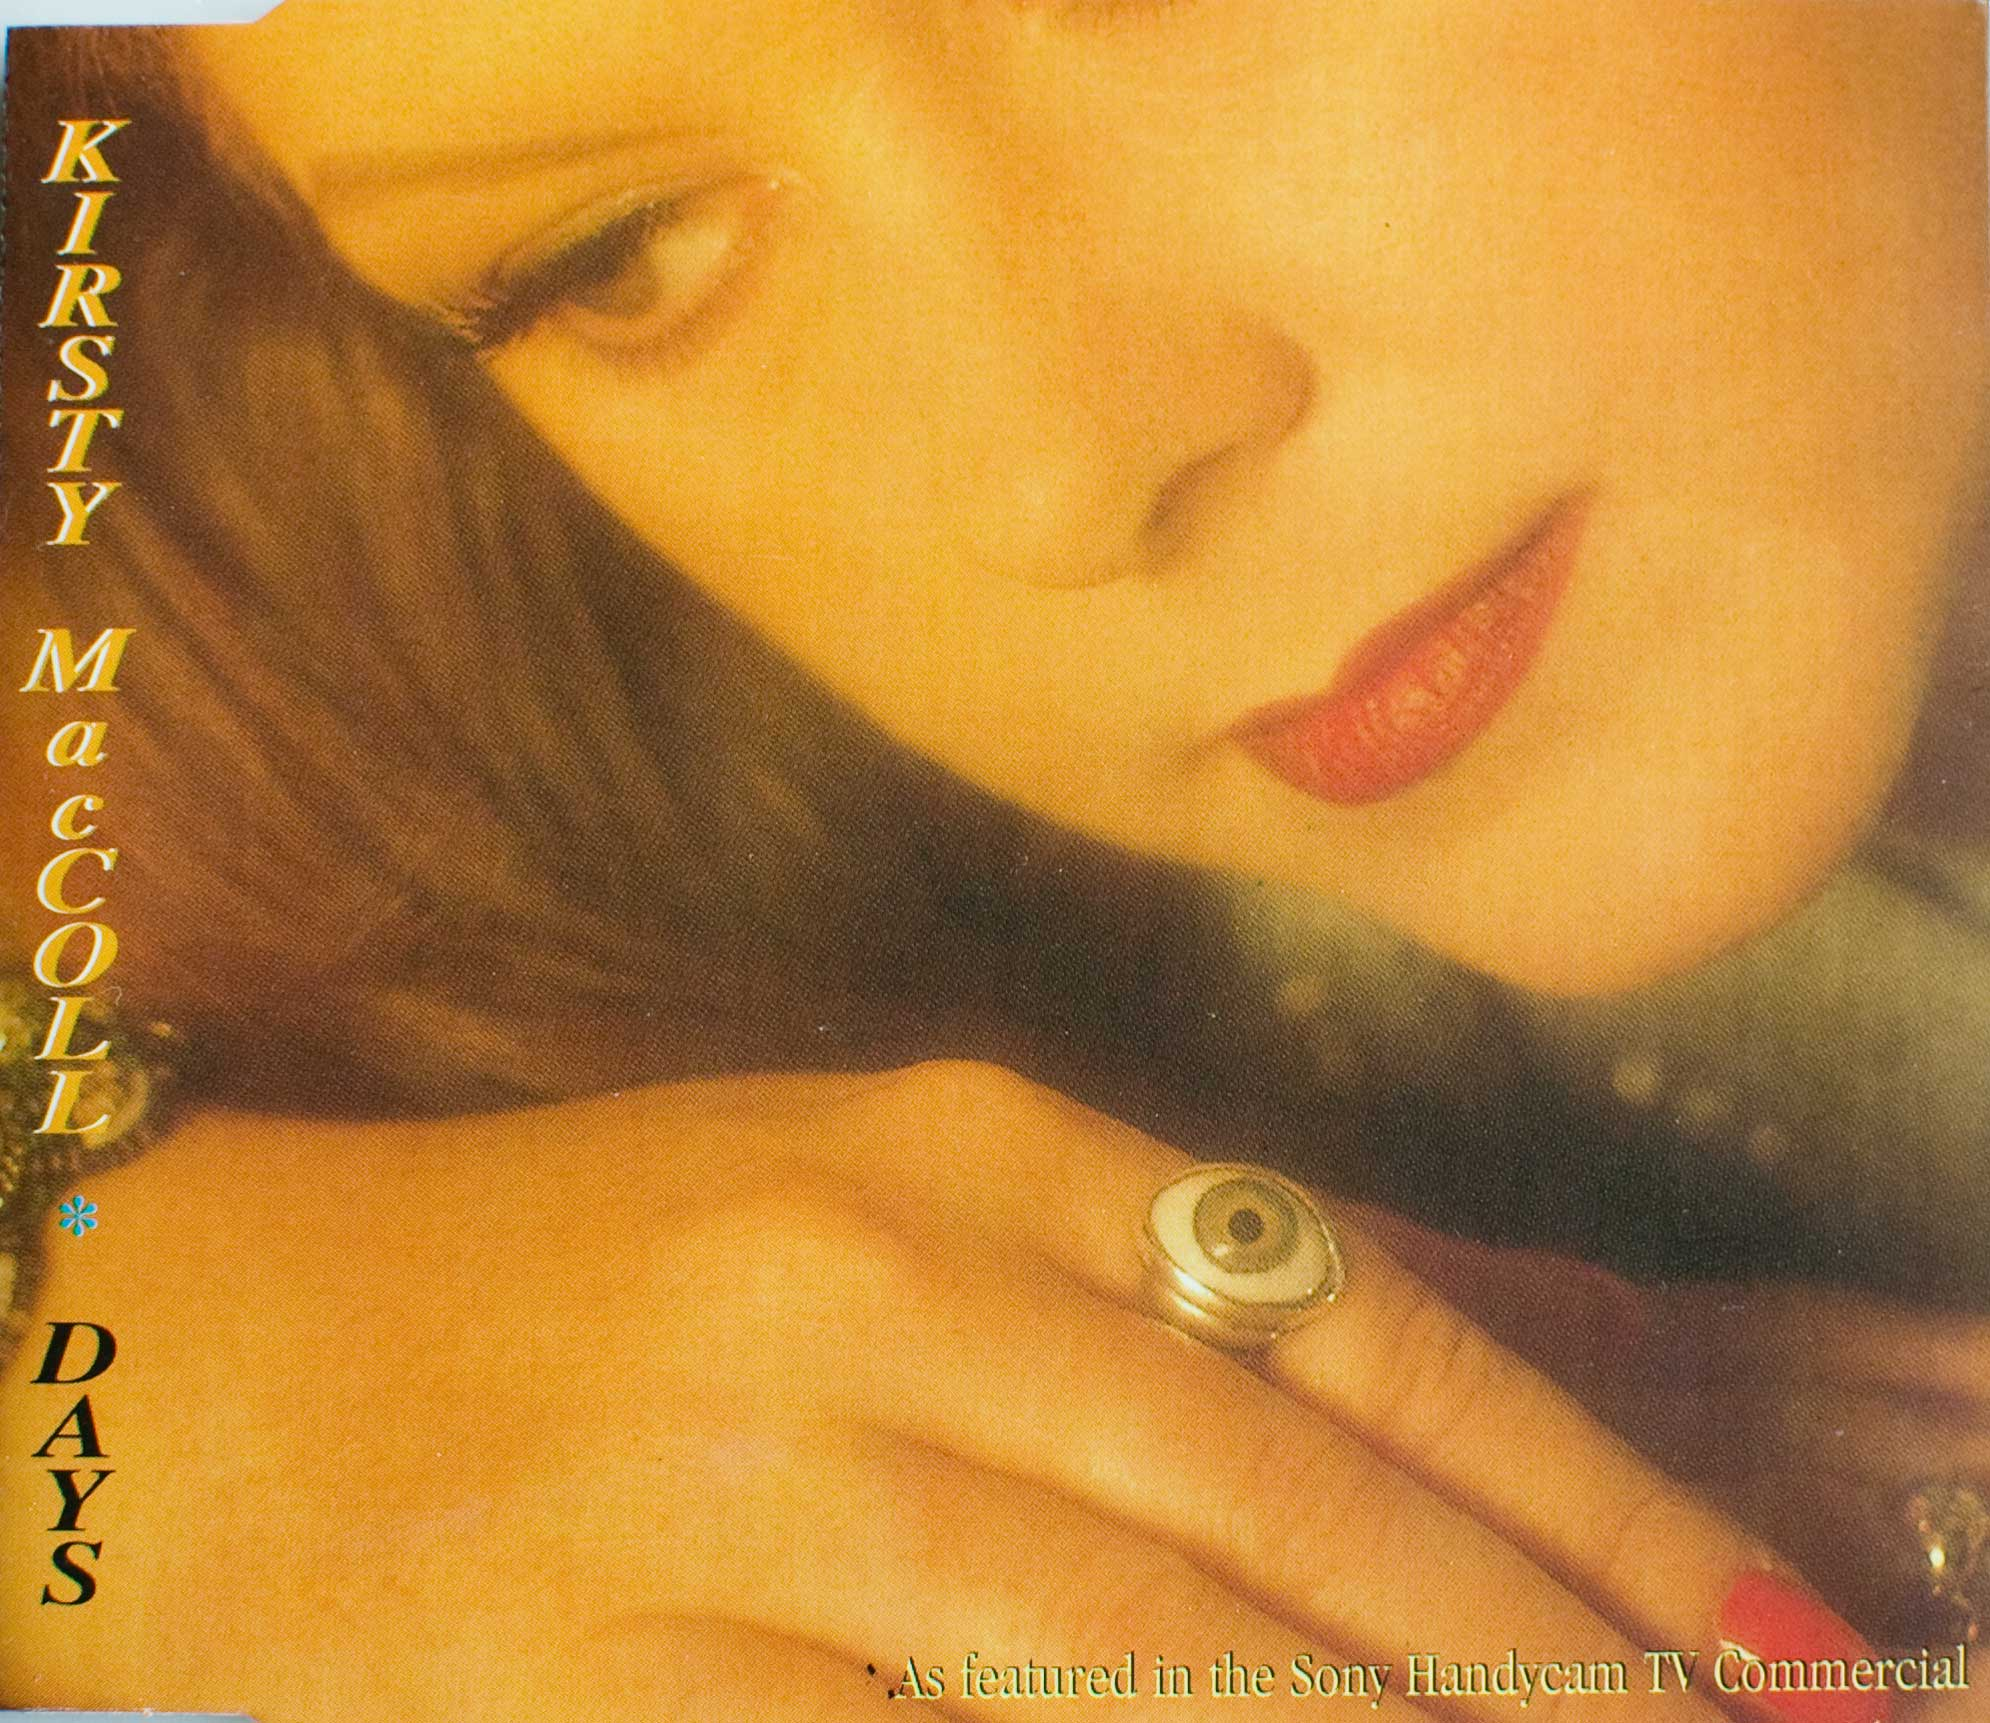 Days (CD 1995 reissue) front cover